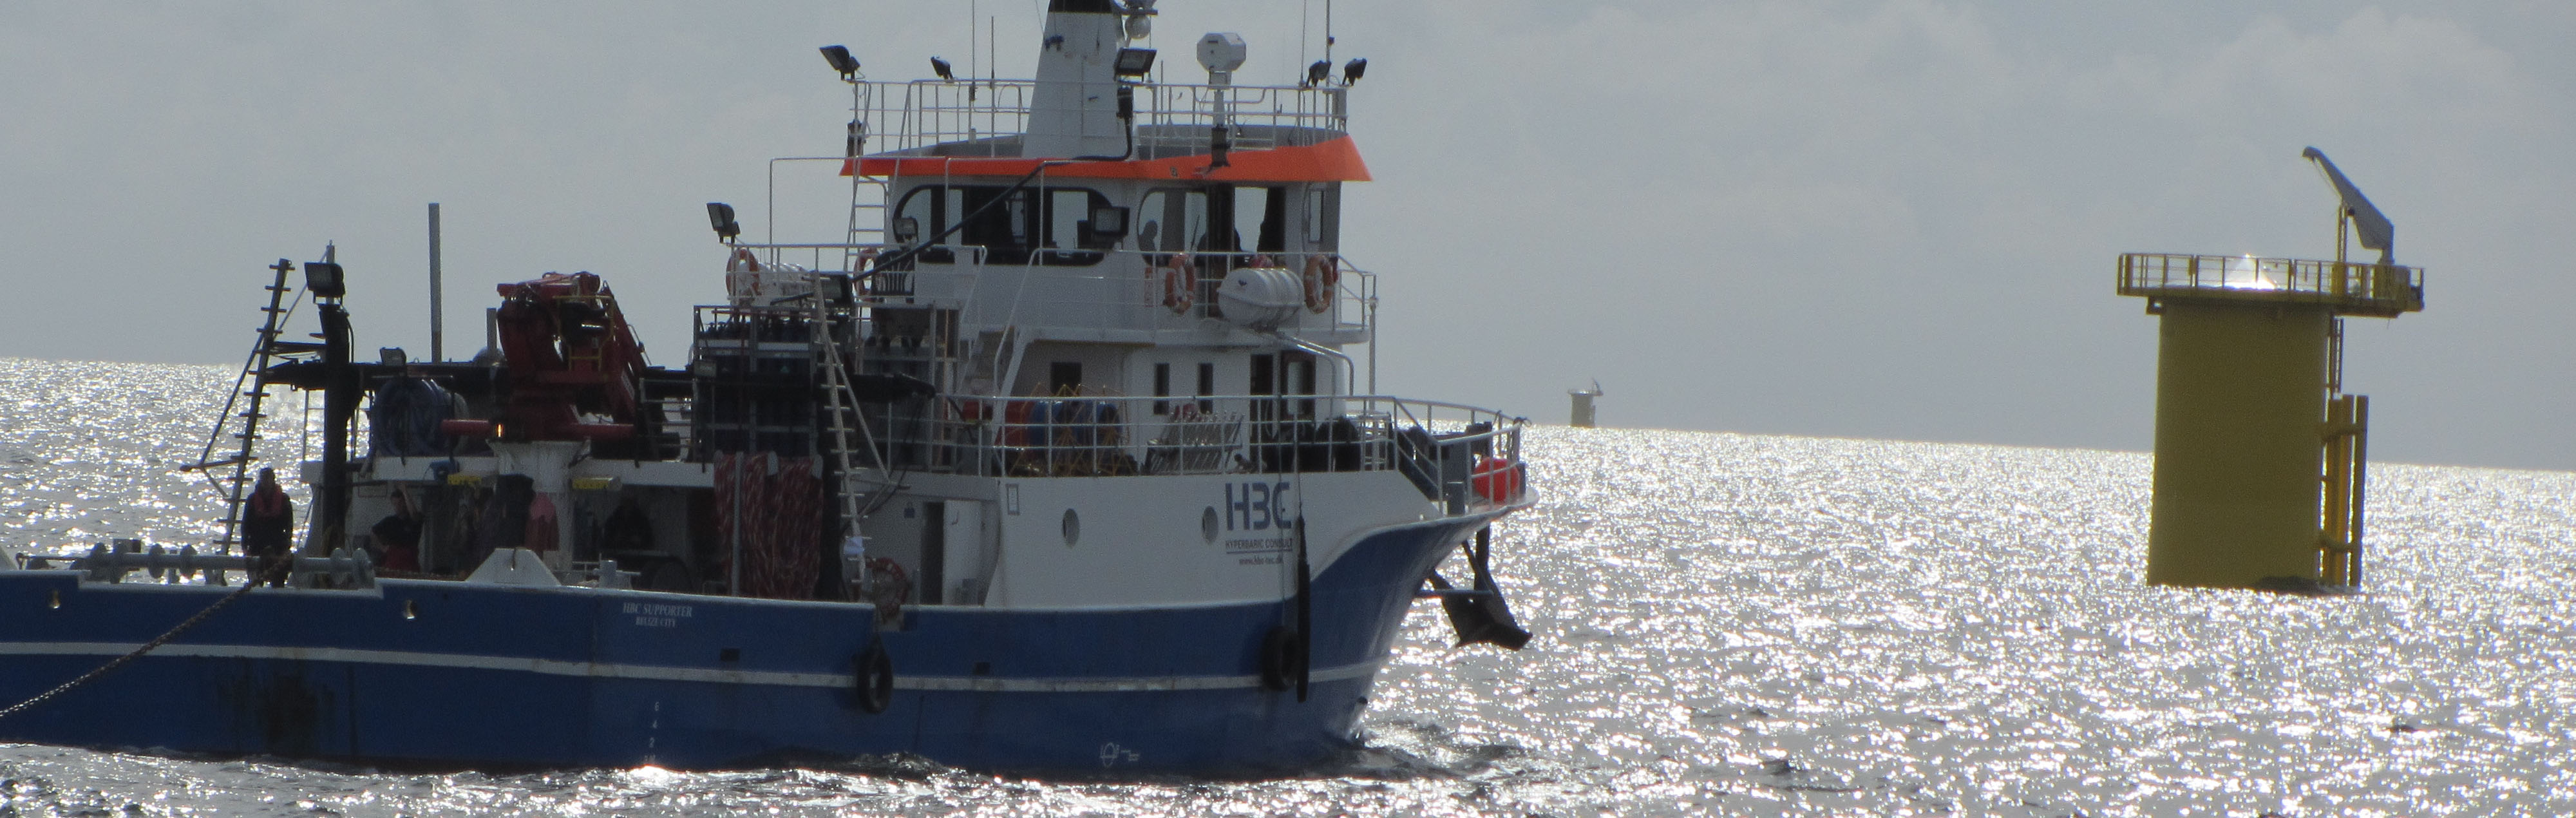 HBC Supporter sailing in offshore windfarm